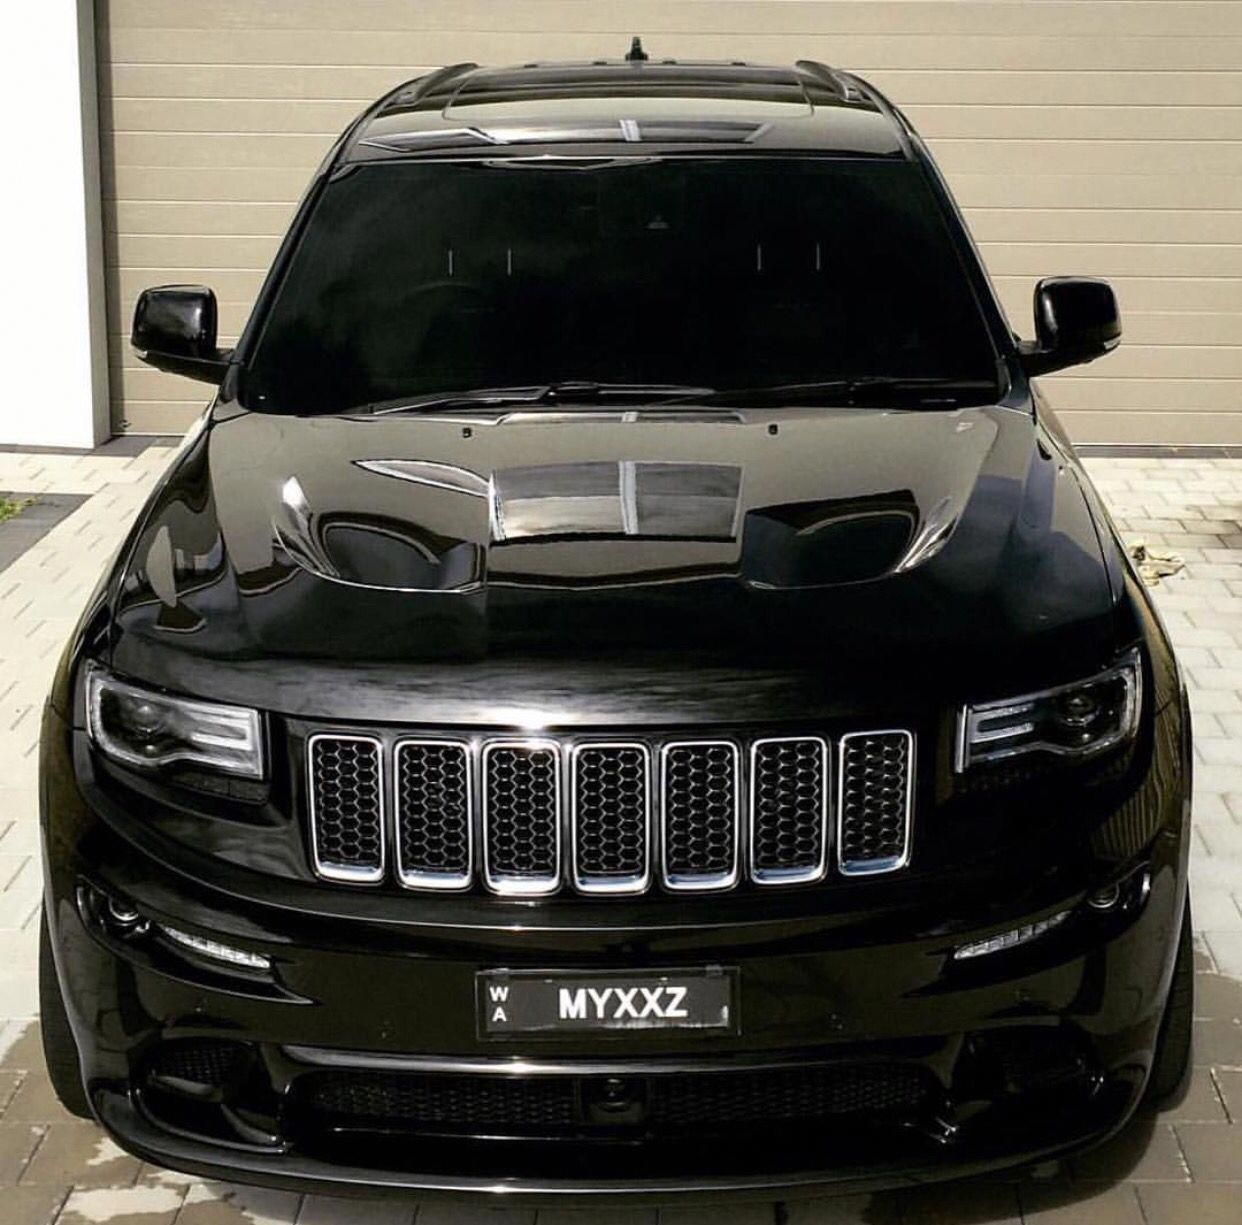 Interior Designer Vs Interior Decorator Howinteriordesignerwork Interiorarchitecturedegree Jeep Grand Cherokee Srt Jeep Grand Cherokee Jeep Srt8